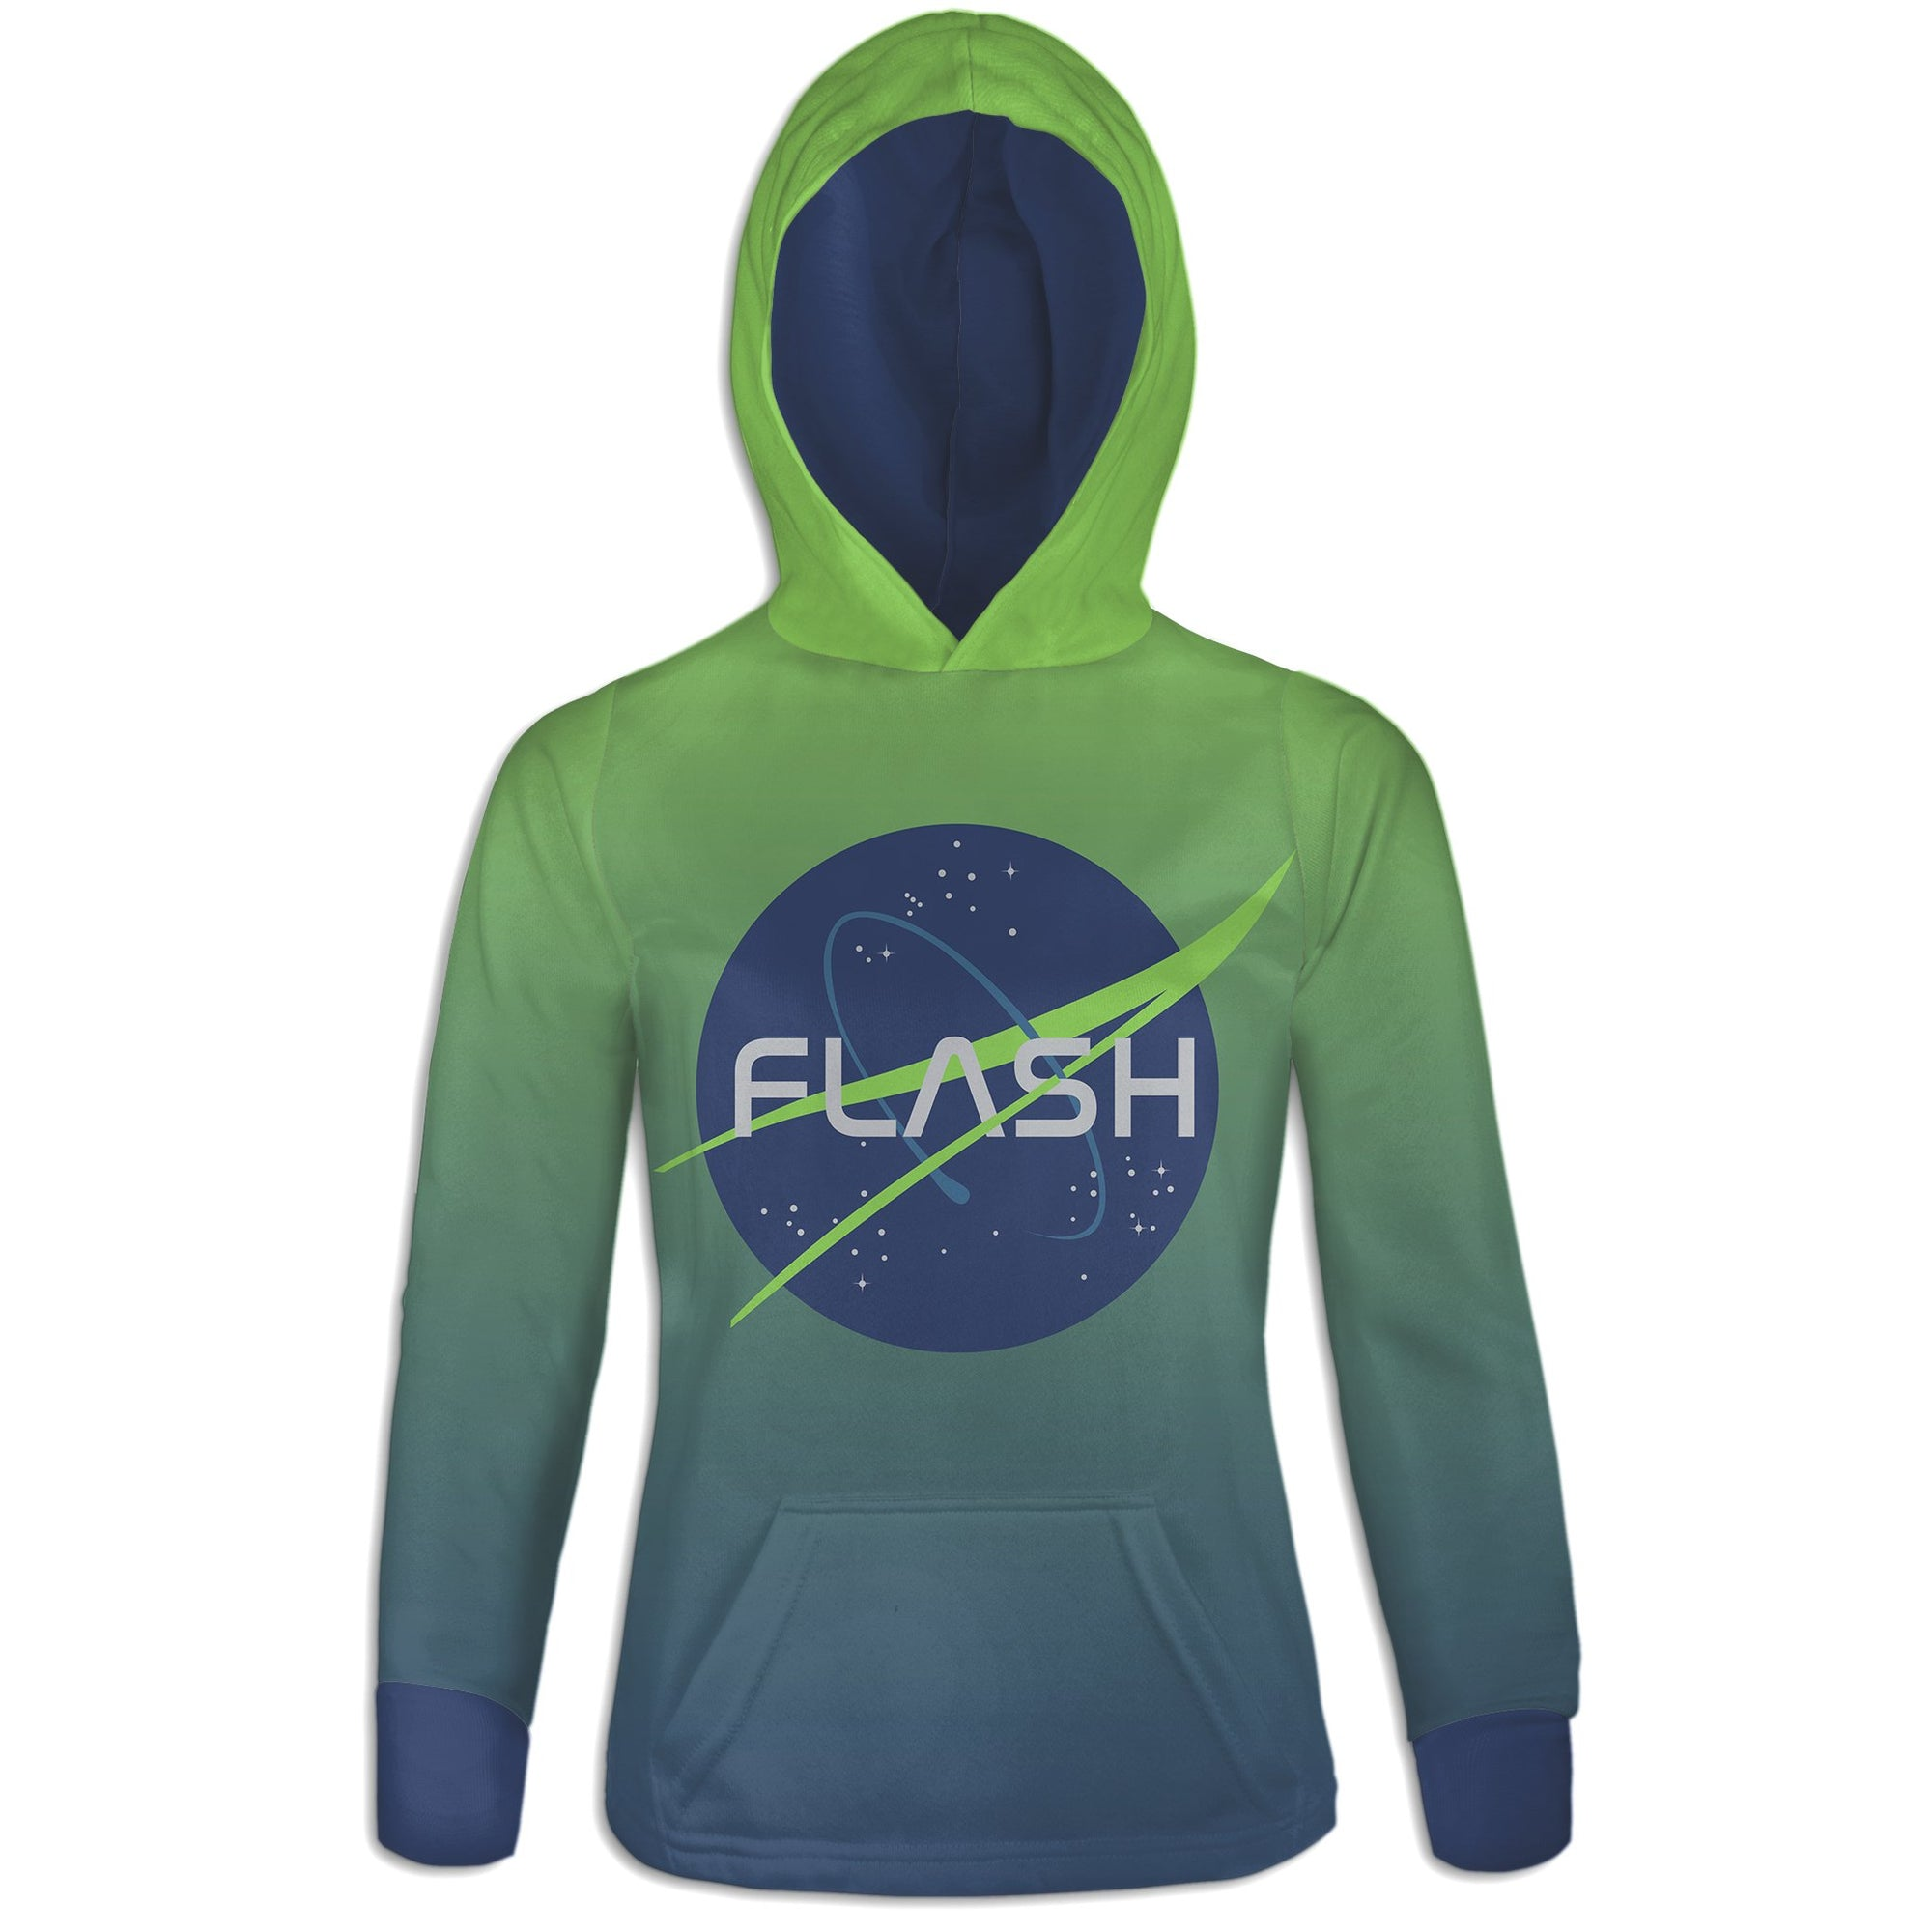 Lift Off Womens Hoodie | flashgordonshop.com